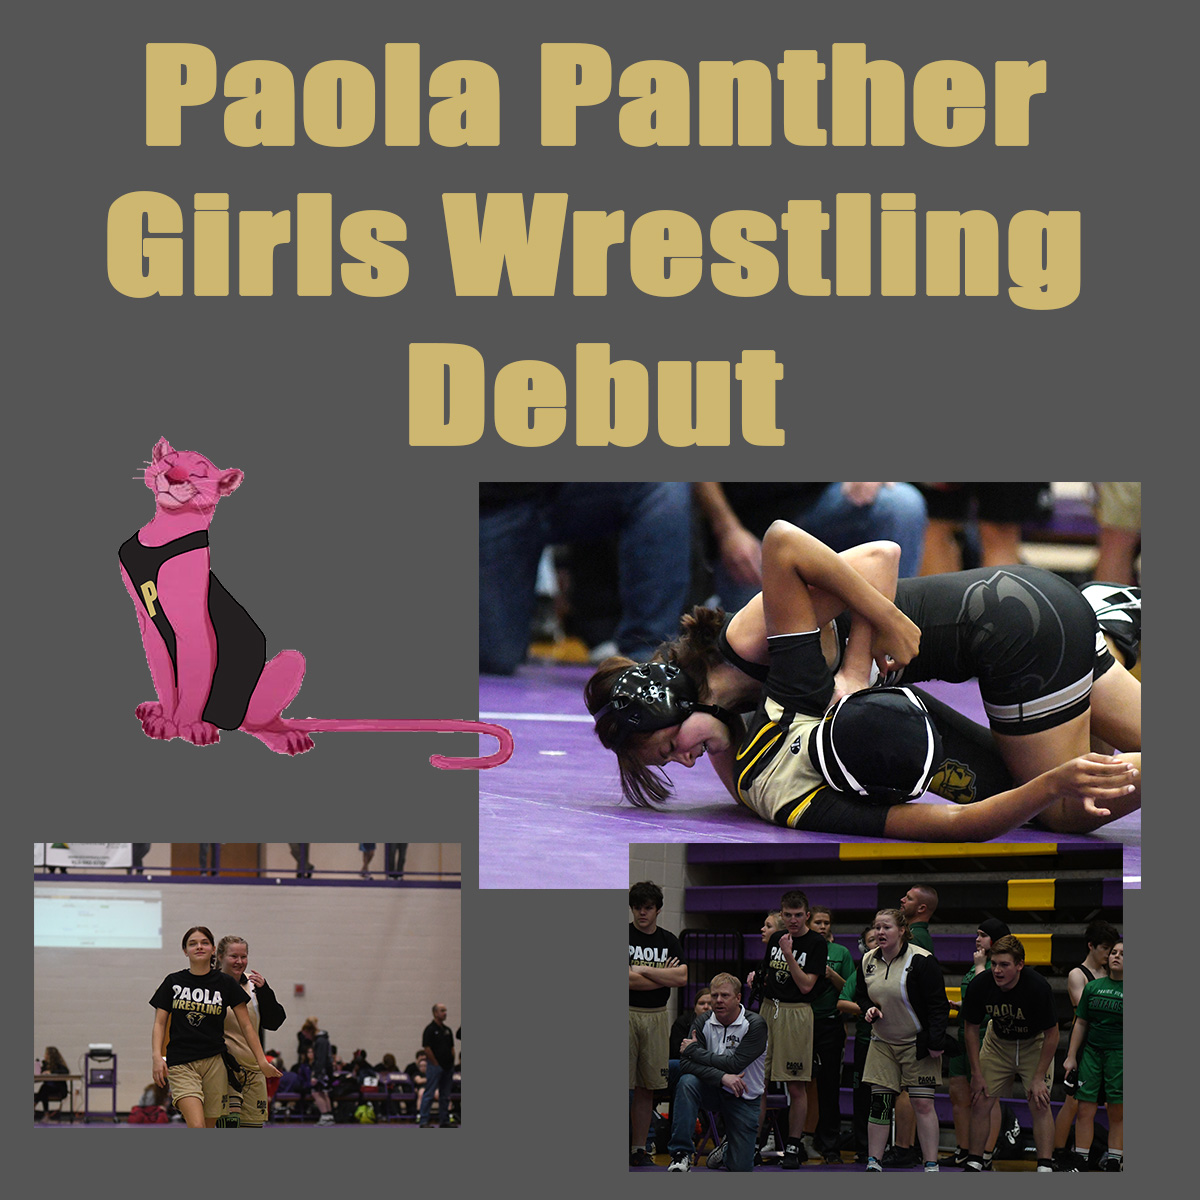 Panther Girls Wrestling